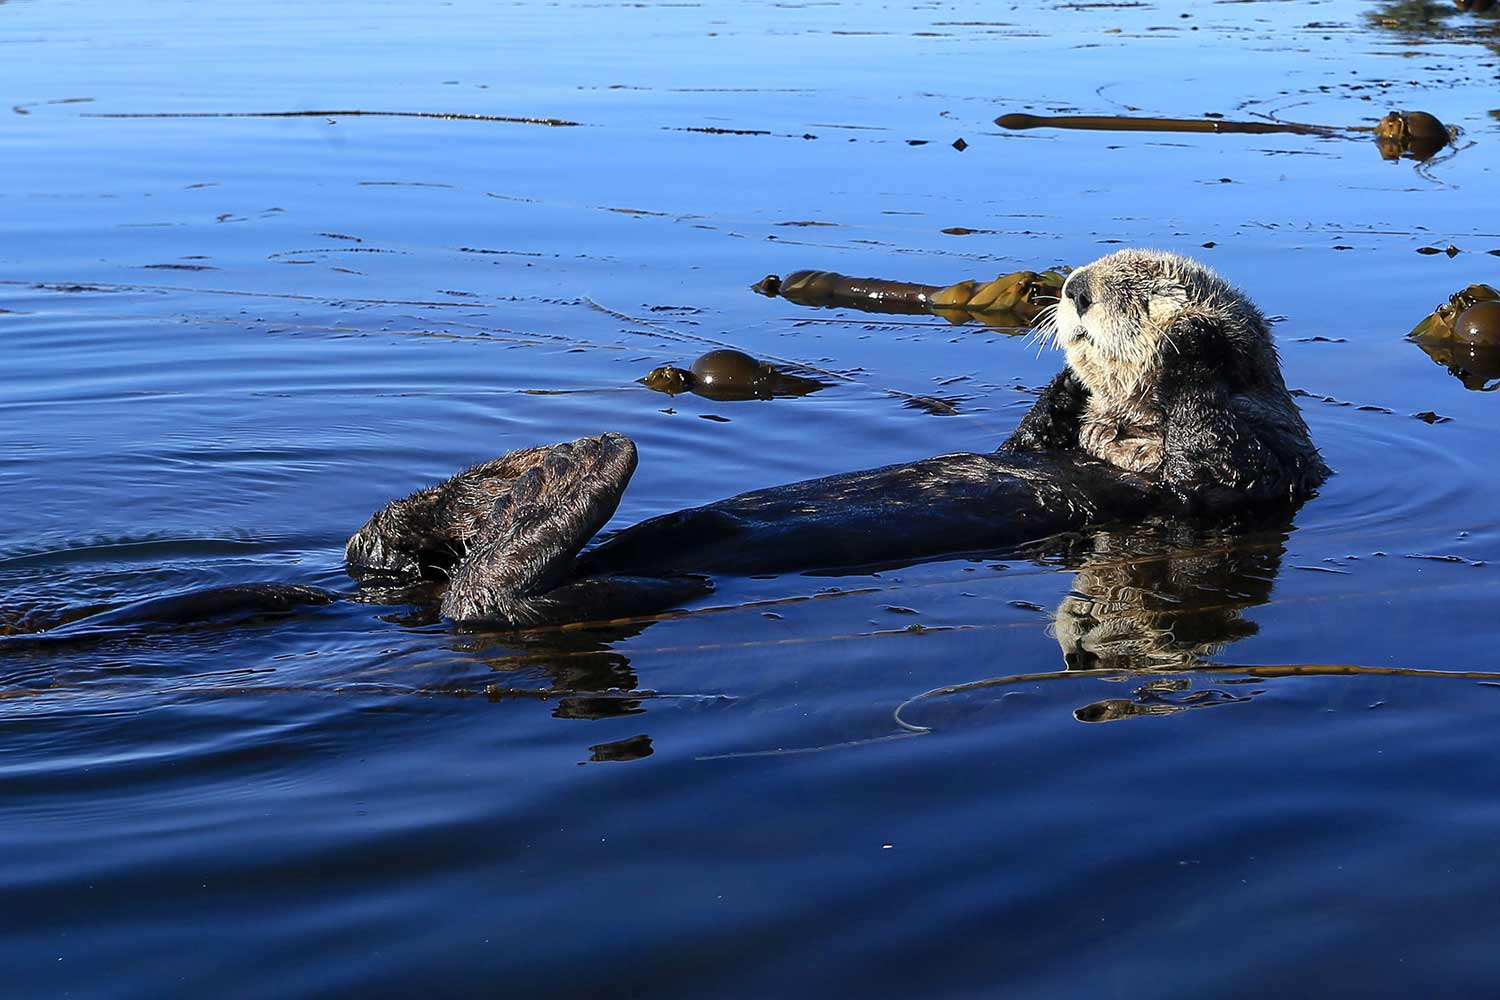 A northern sea otter swims on its back in Kodiak National Wildlife Refuge.